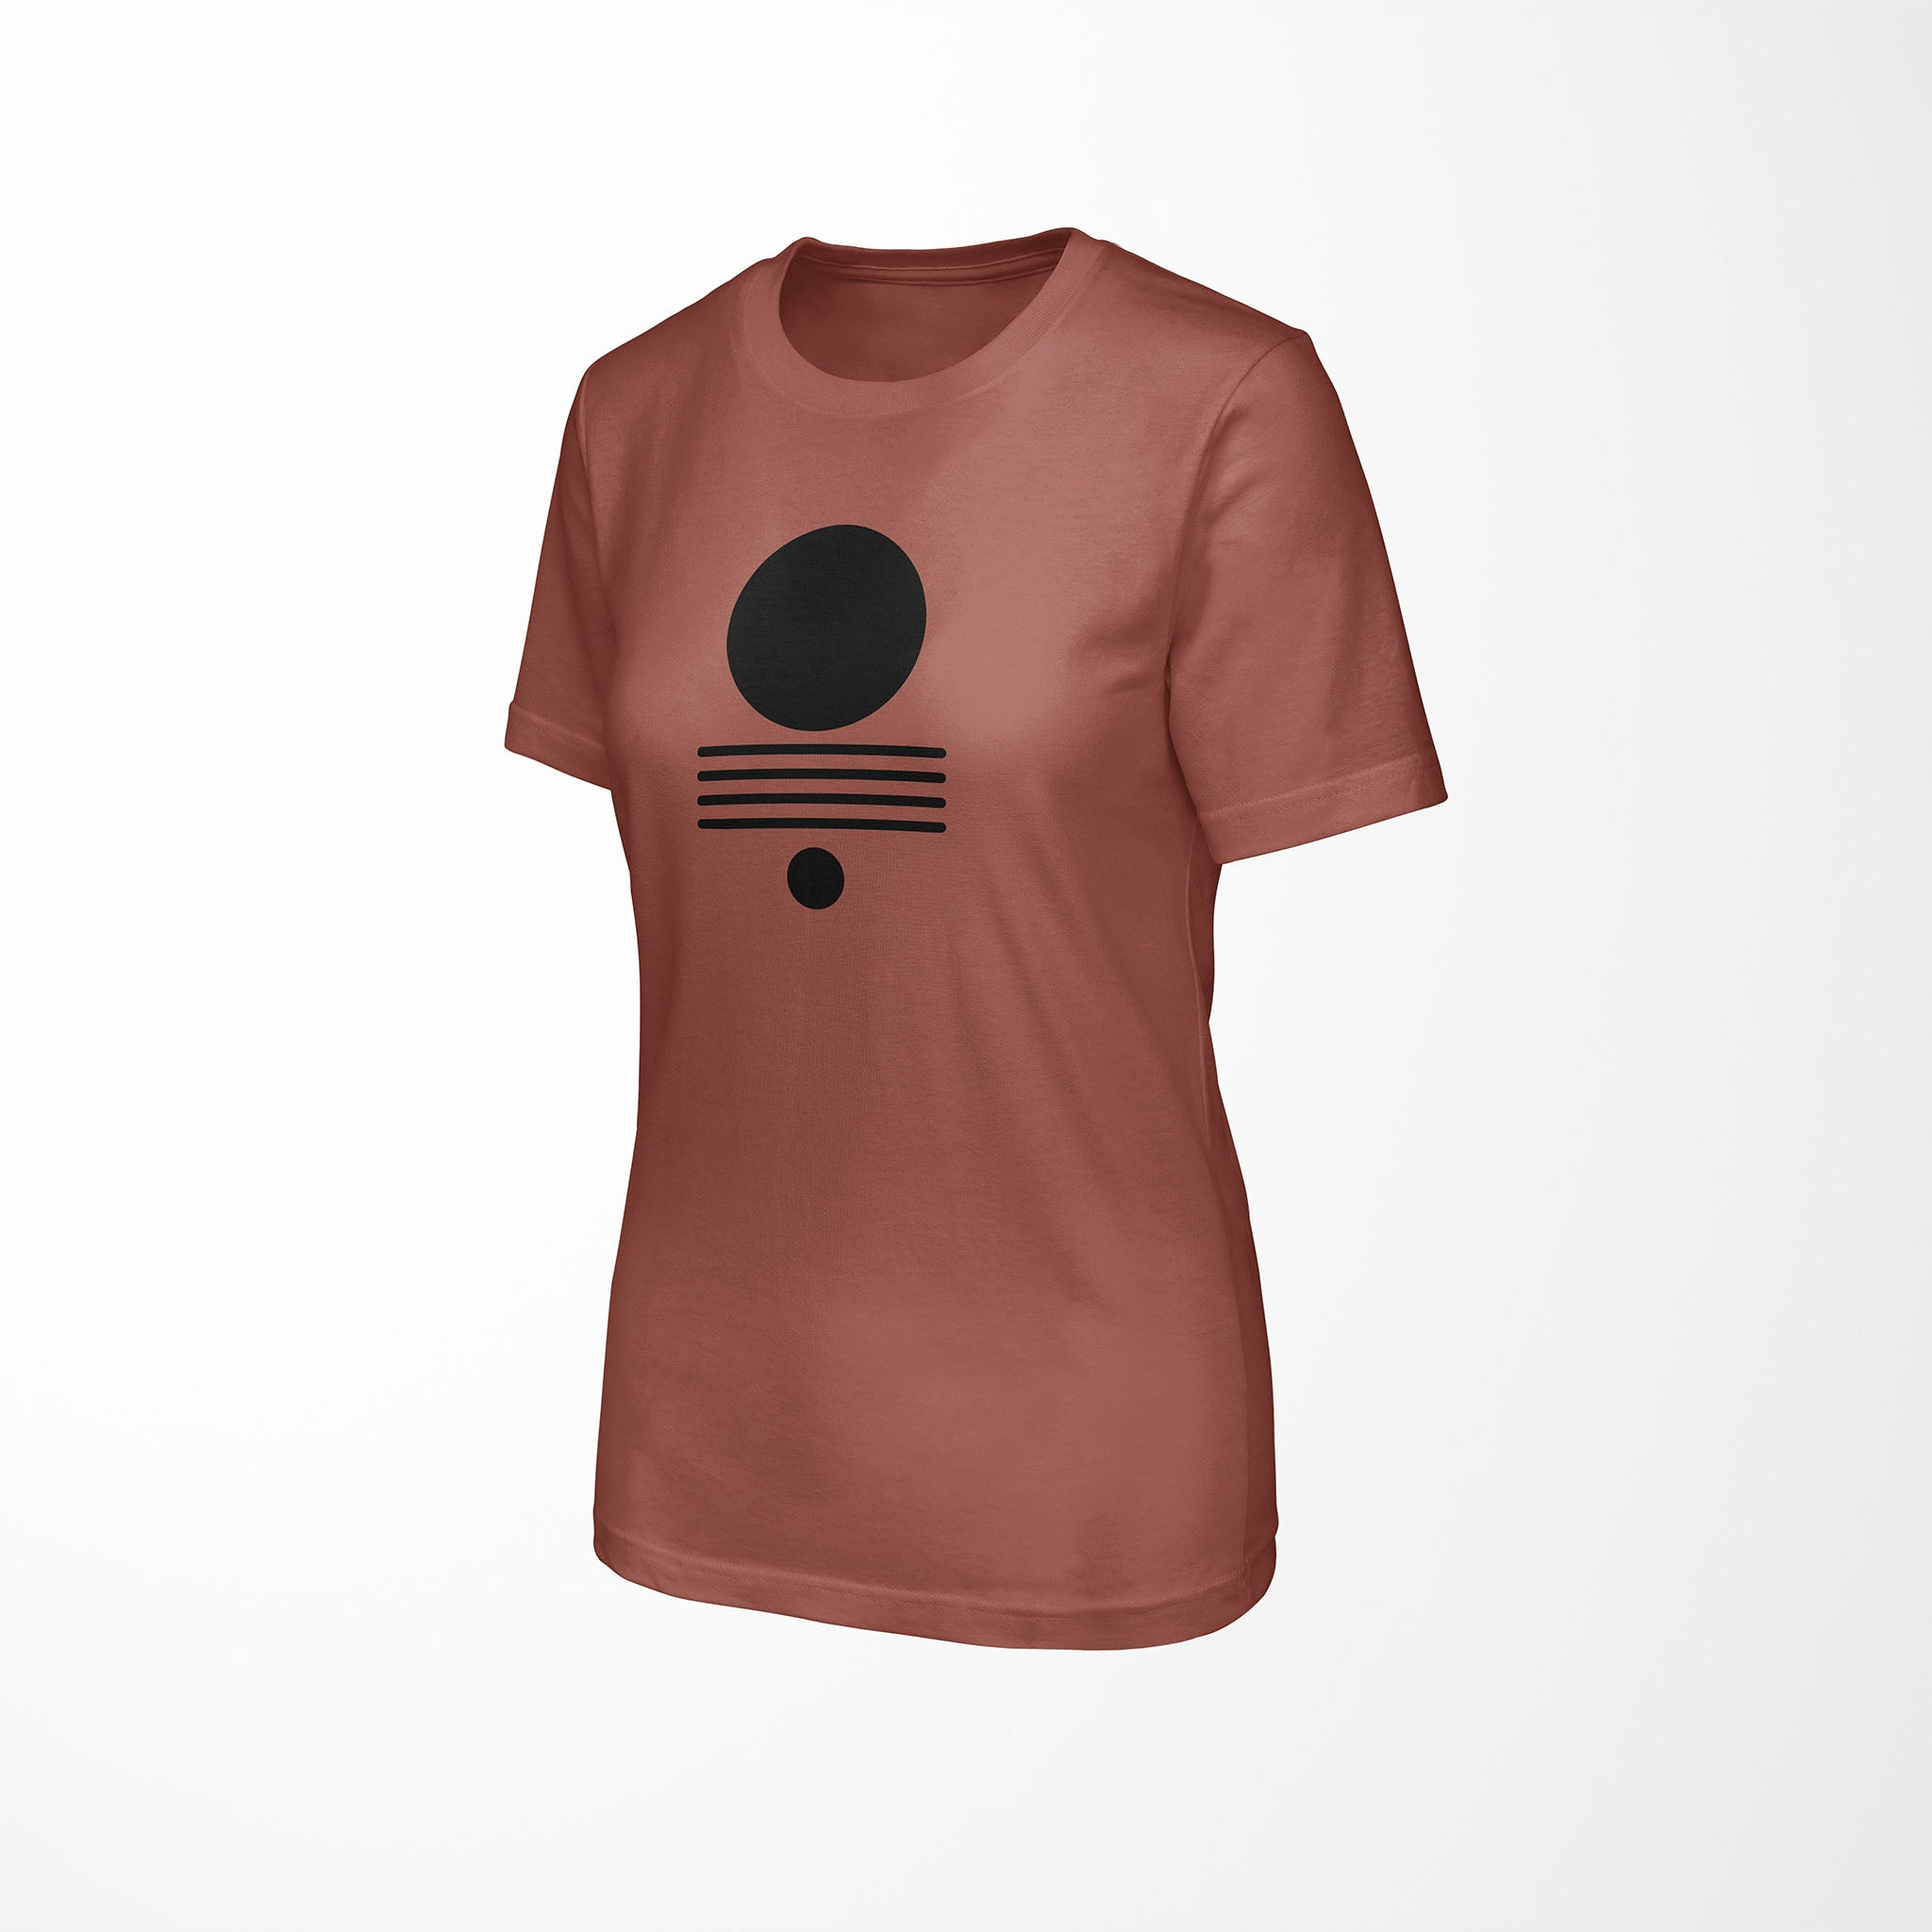 ELEMENTS Relaxed Fit Women's Triblend Clay T-Shirt side angle